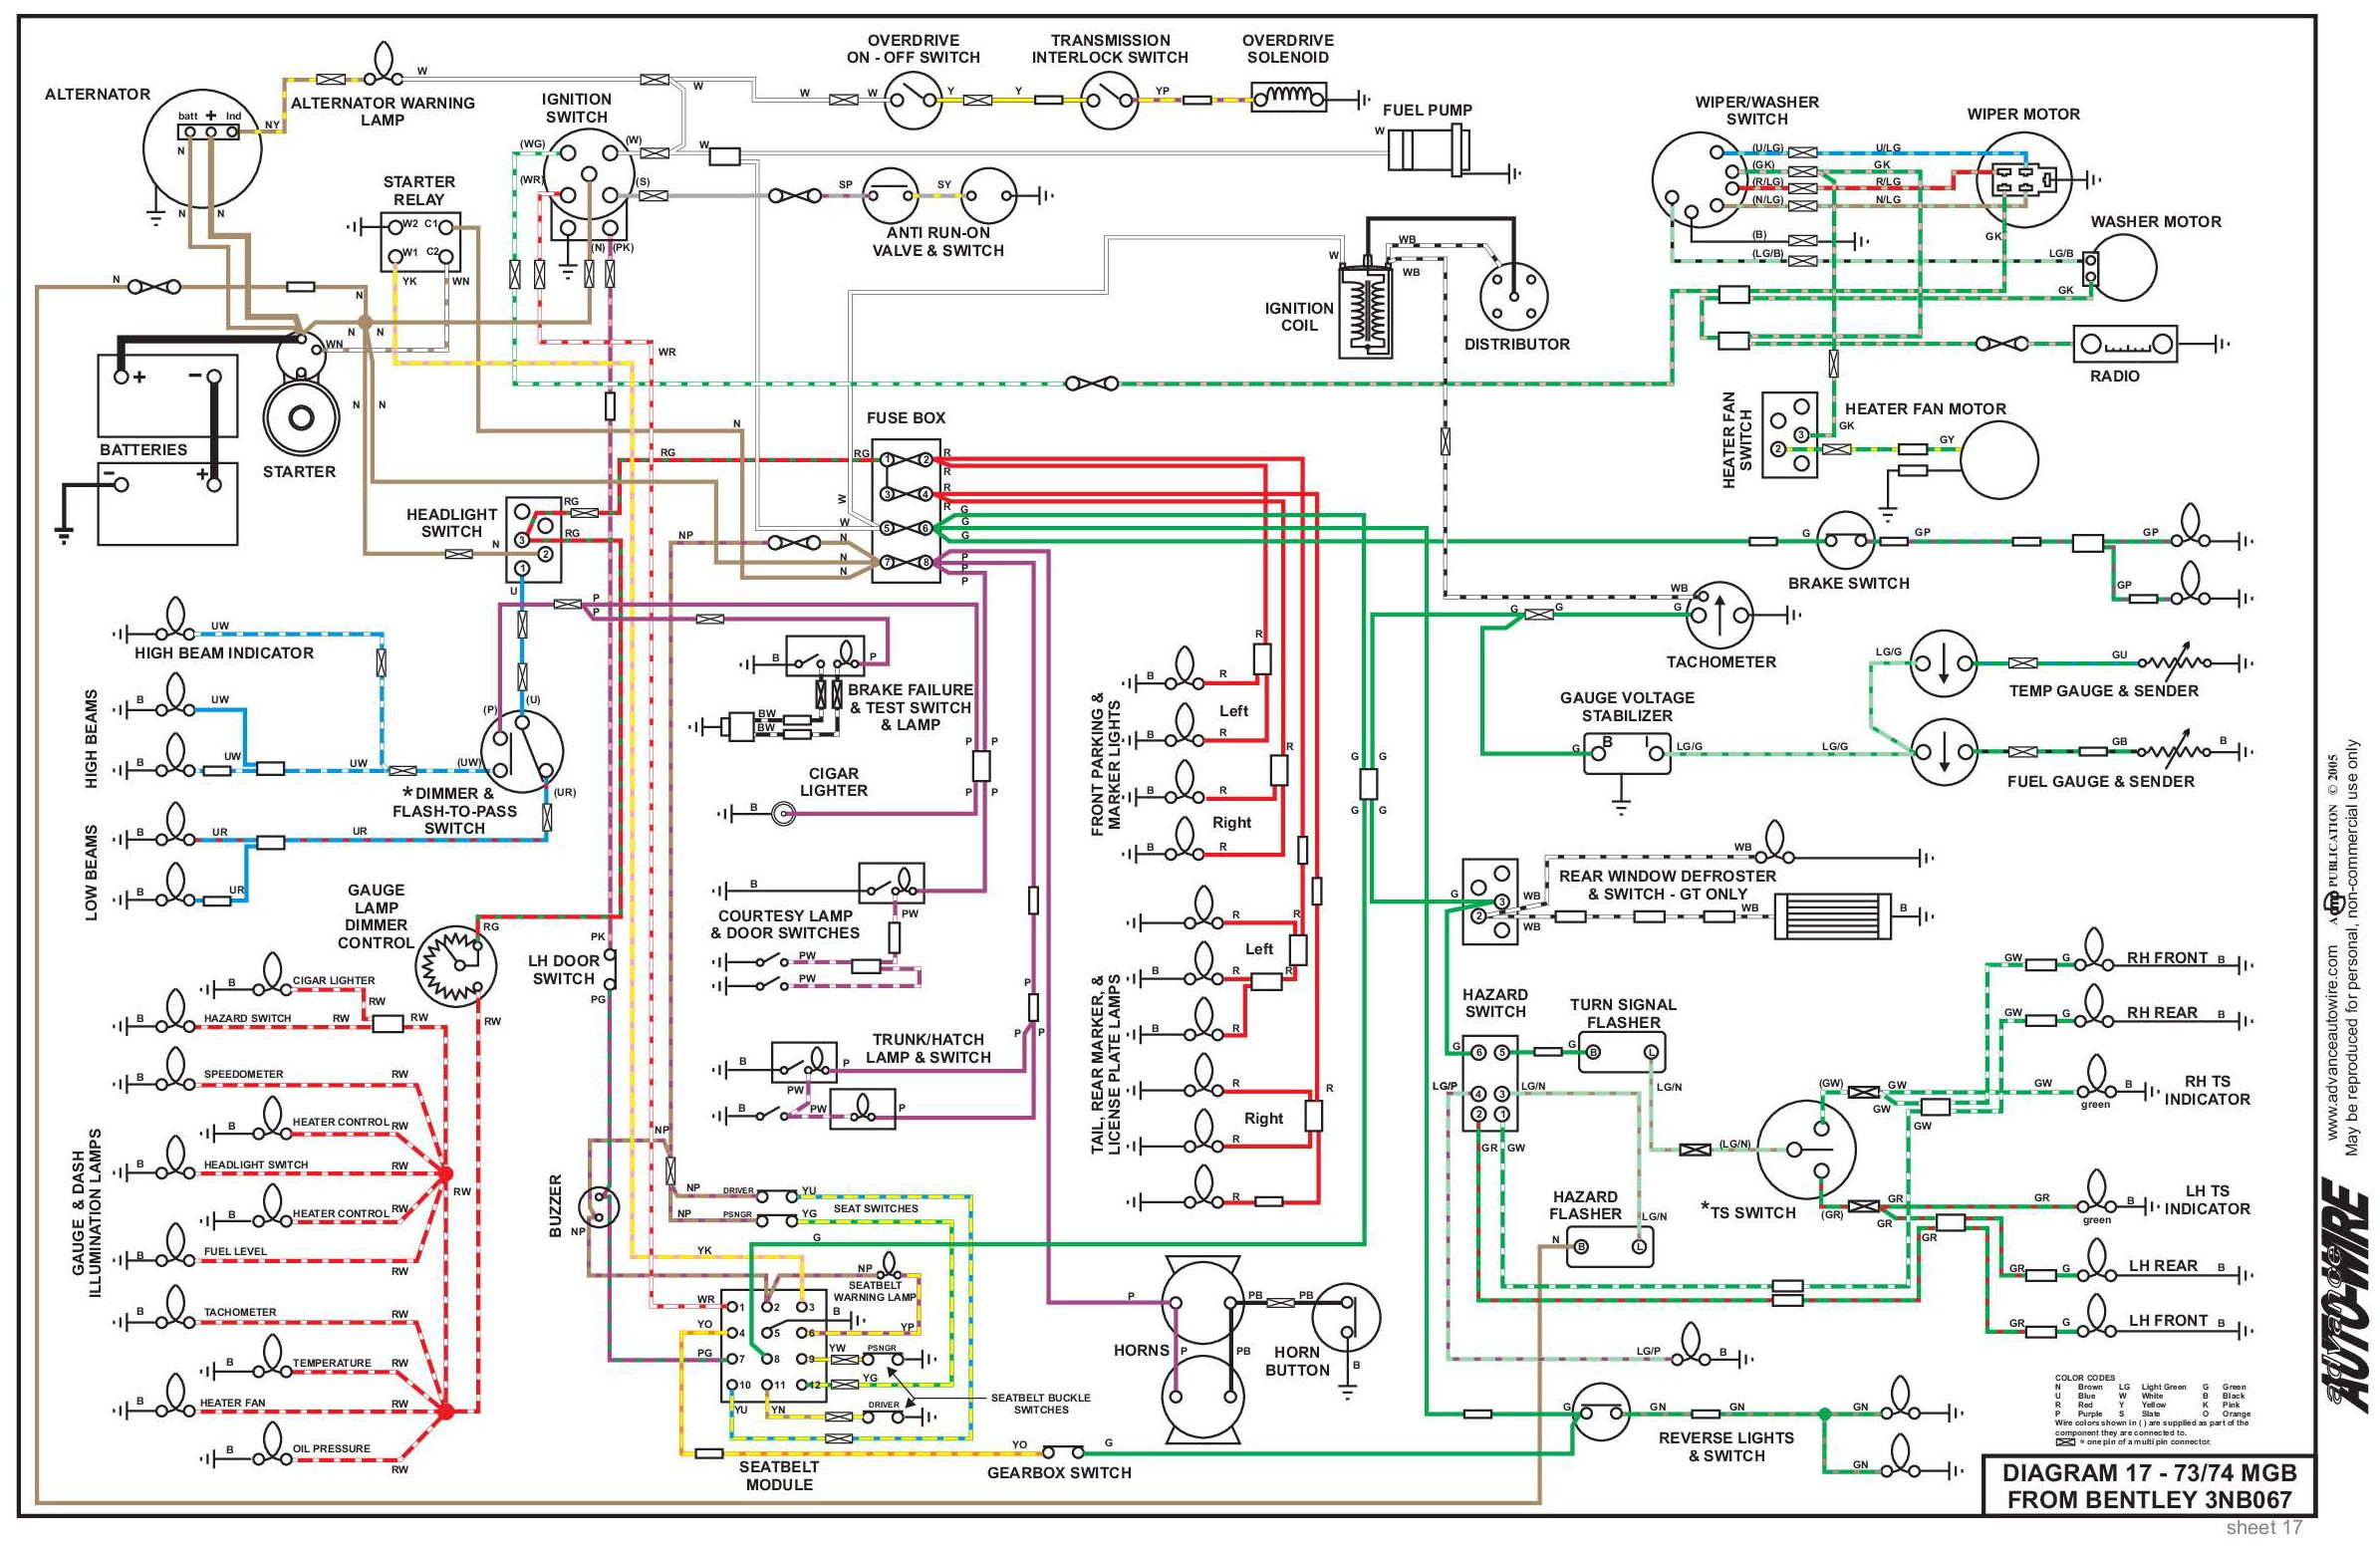 Wiring Diagram 3 Wire Turn Signal Flasher with Buzzar Electrical System Of Wiring Diagram 3 Wire Turn Signal Flasher with Buzzar Electrical System